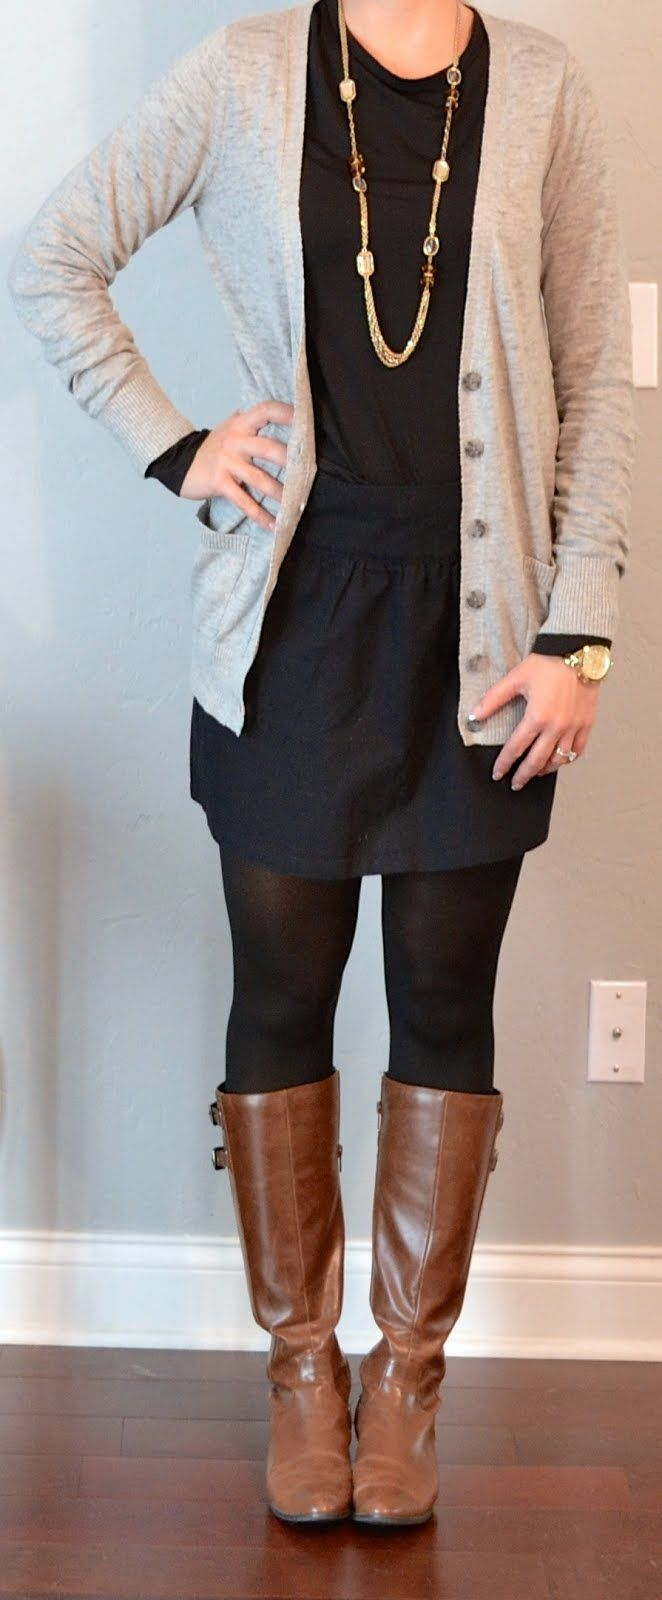 Black leggings, brown boots? - Page 2 - BabyCenter